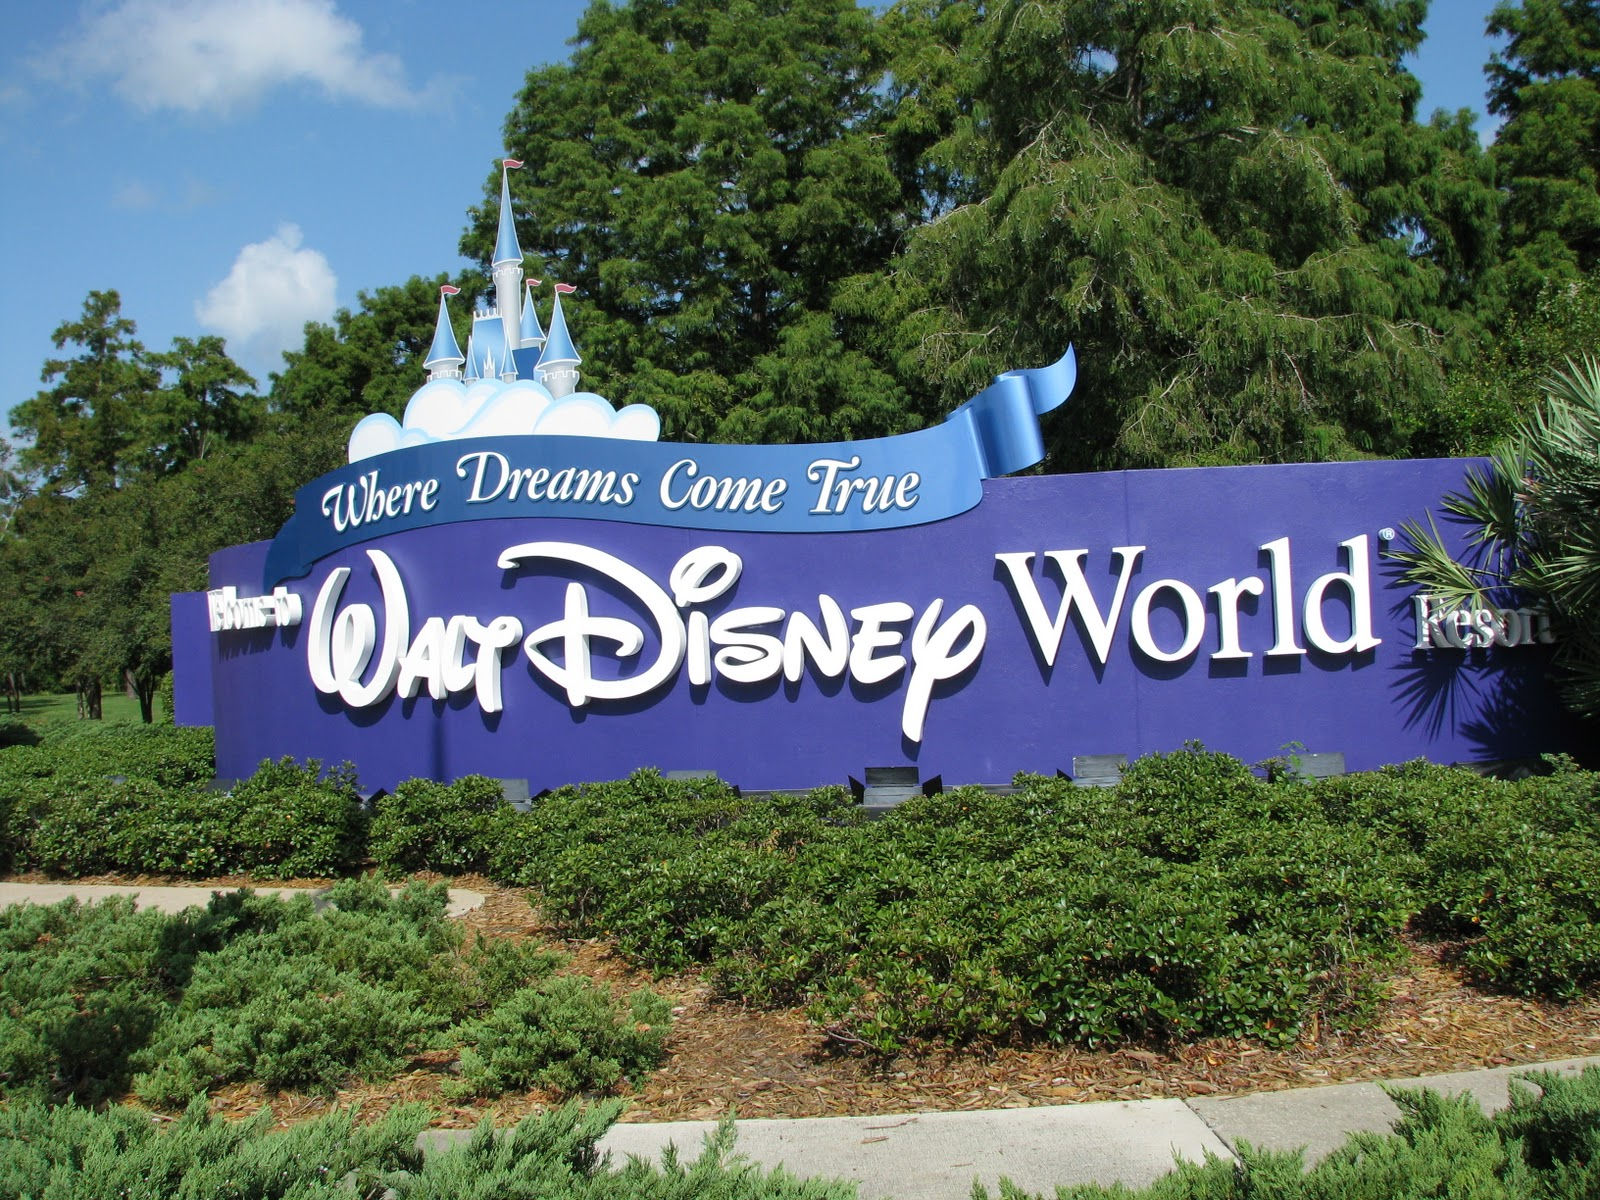 How to Find Discount Tickets to Walt Disney World